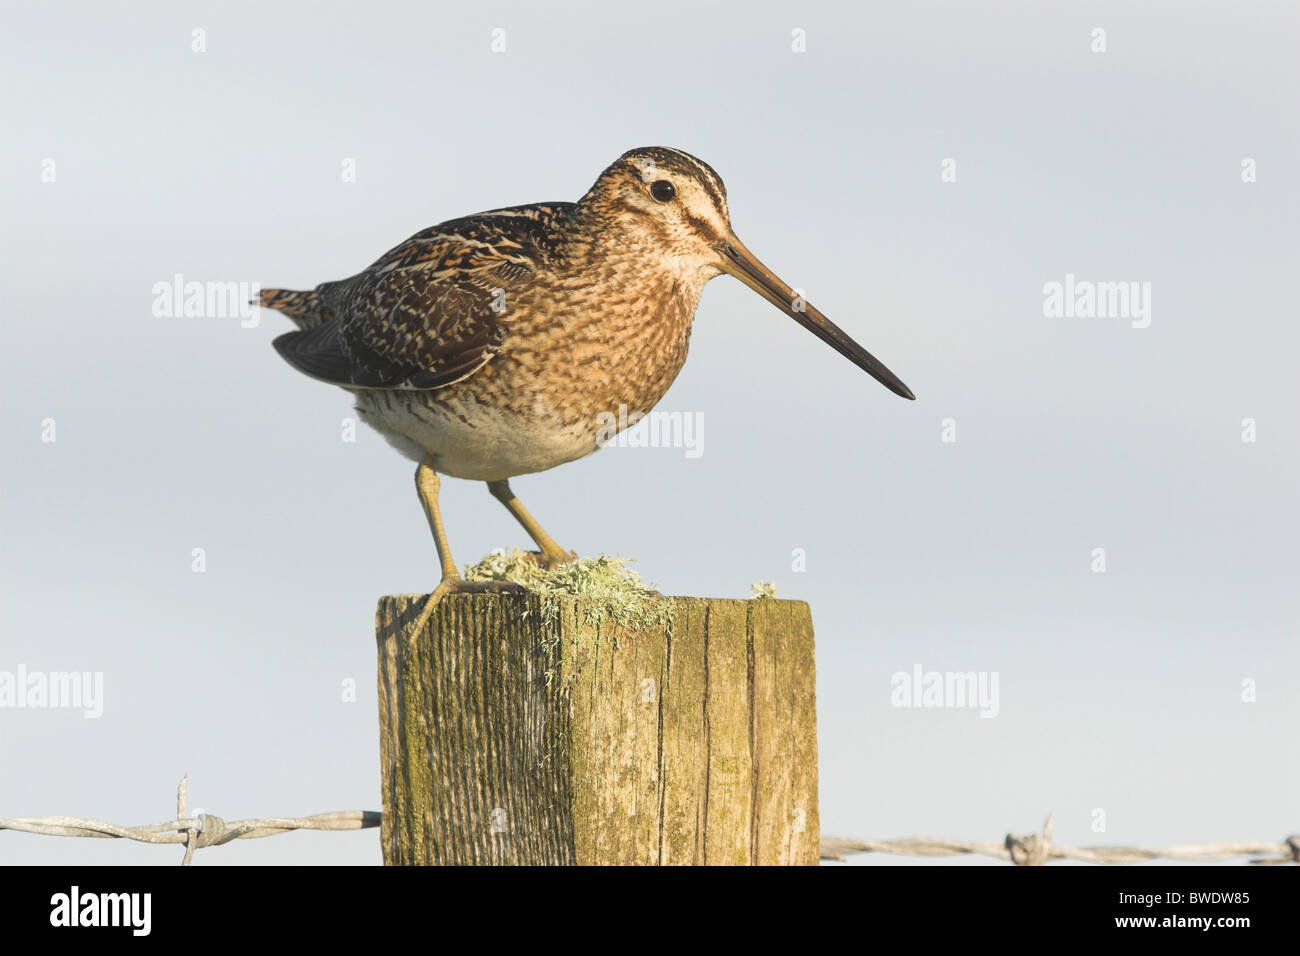 Snipe Gallinago gallinago adult on fence post North Uist Outer Hebrides Western Isles Scotland UK - Stock Image